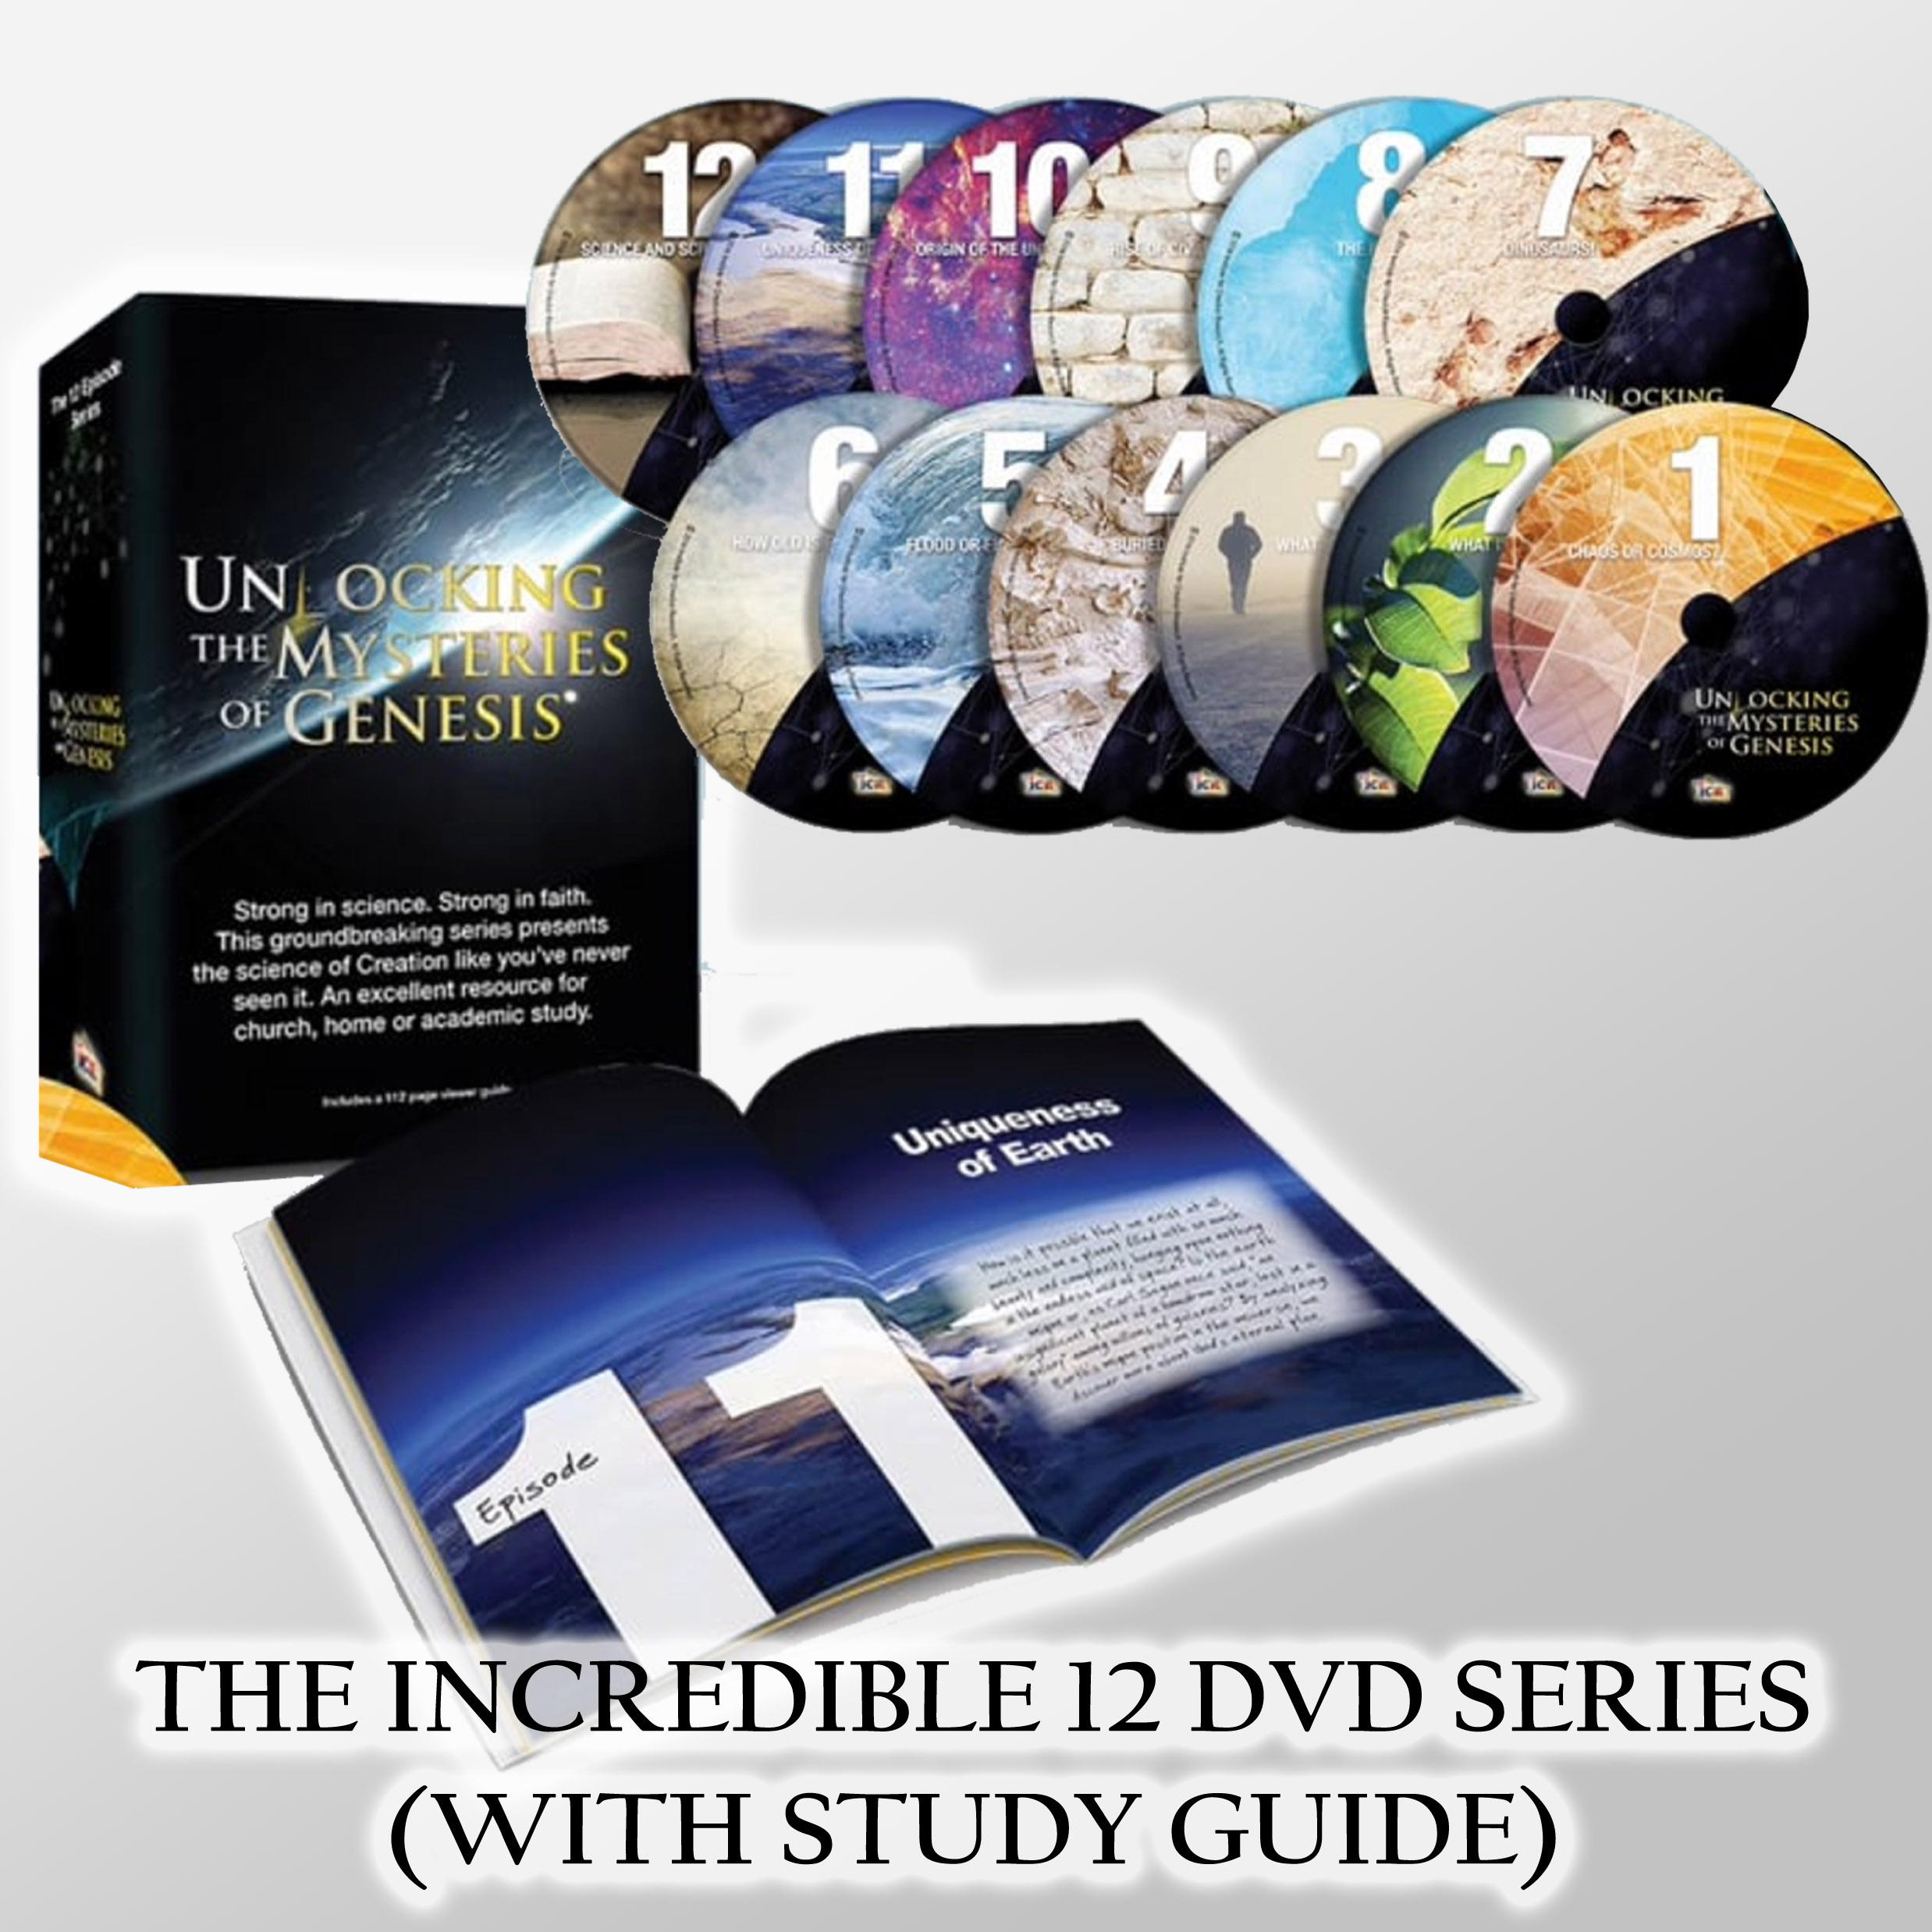 unlocking the mysteries of genesis 12 dvd set by icr creation